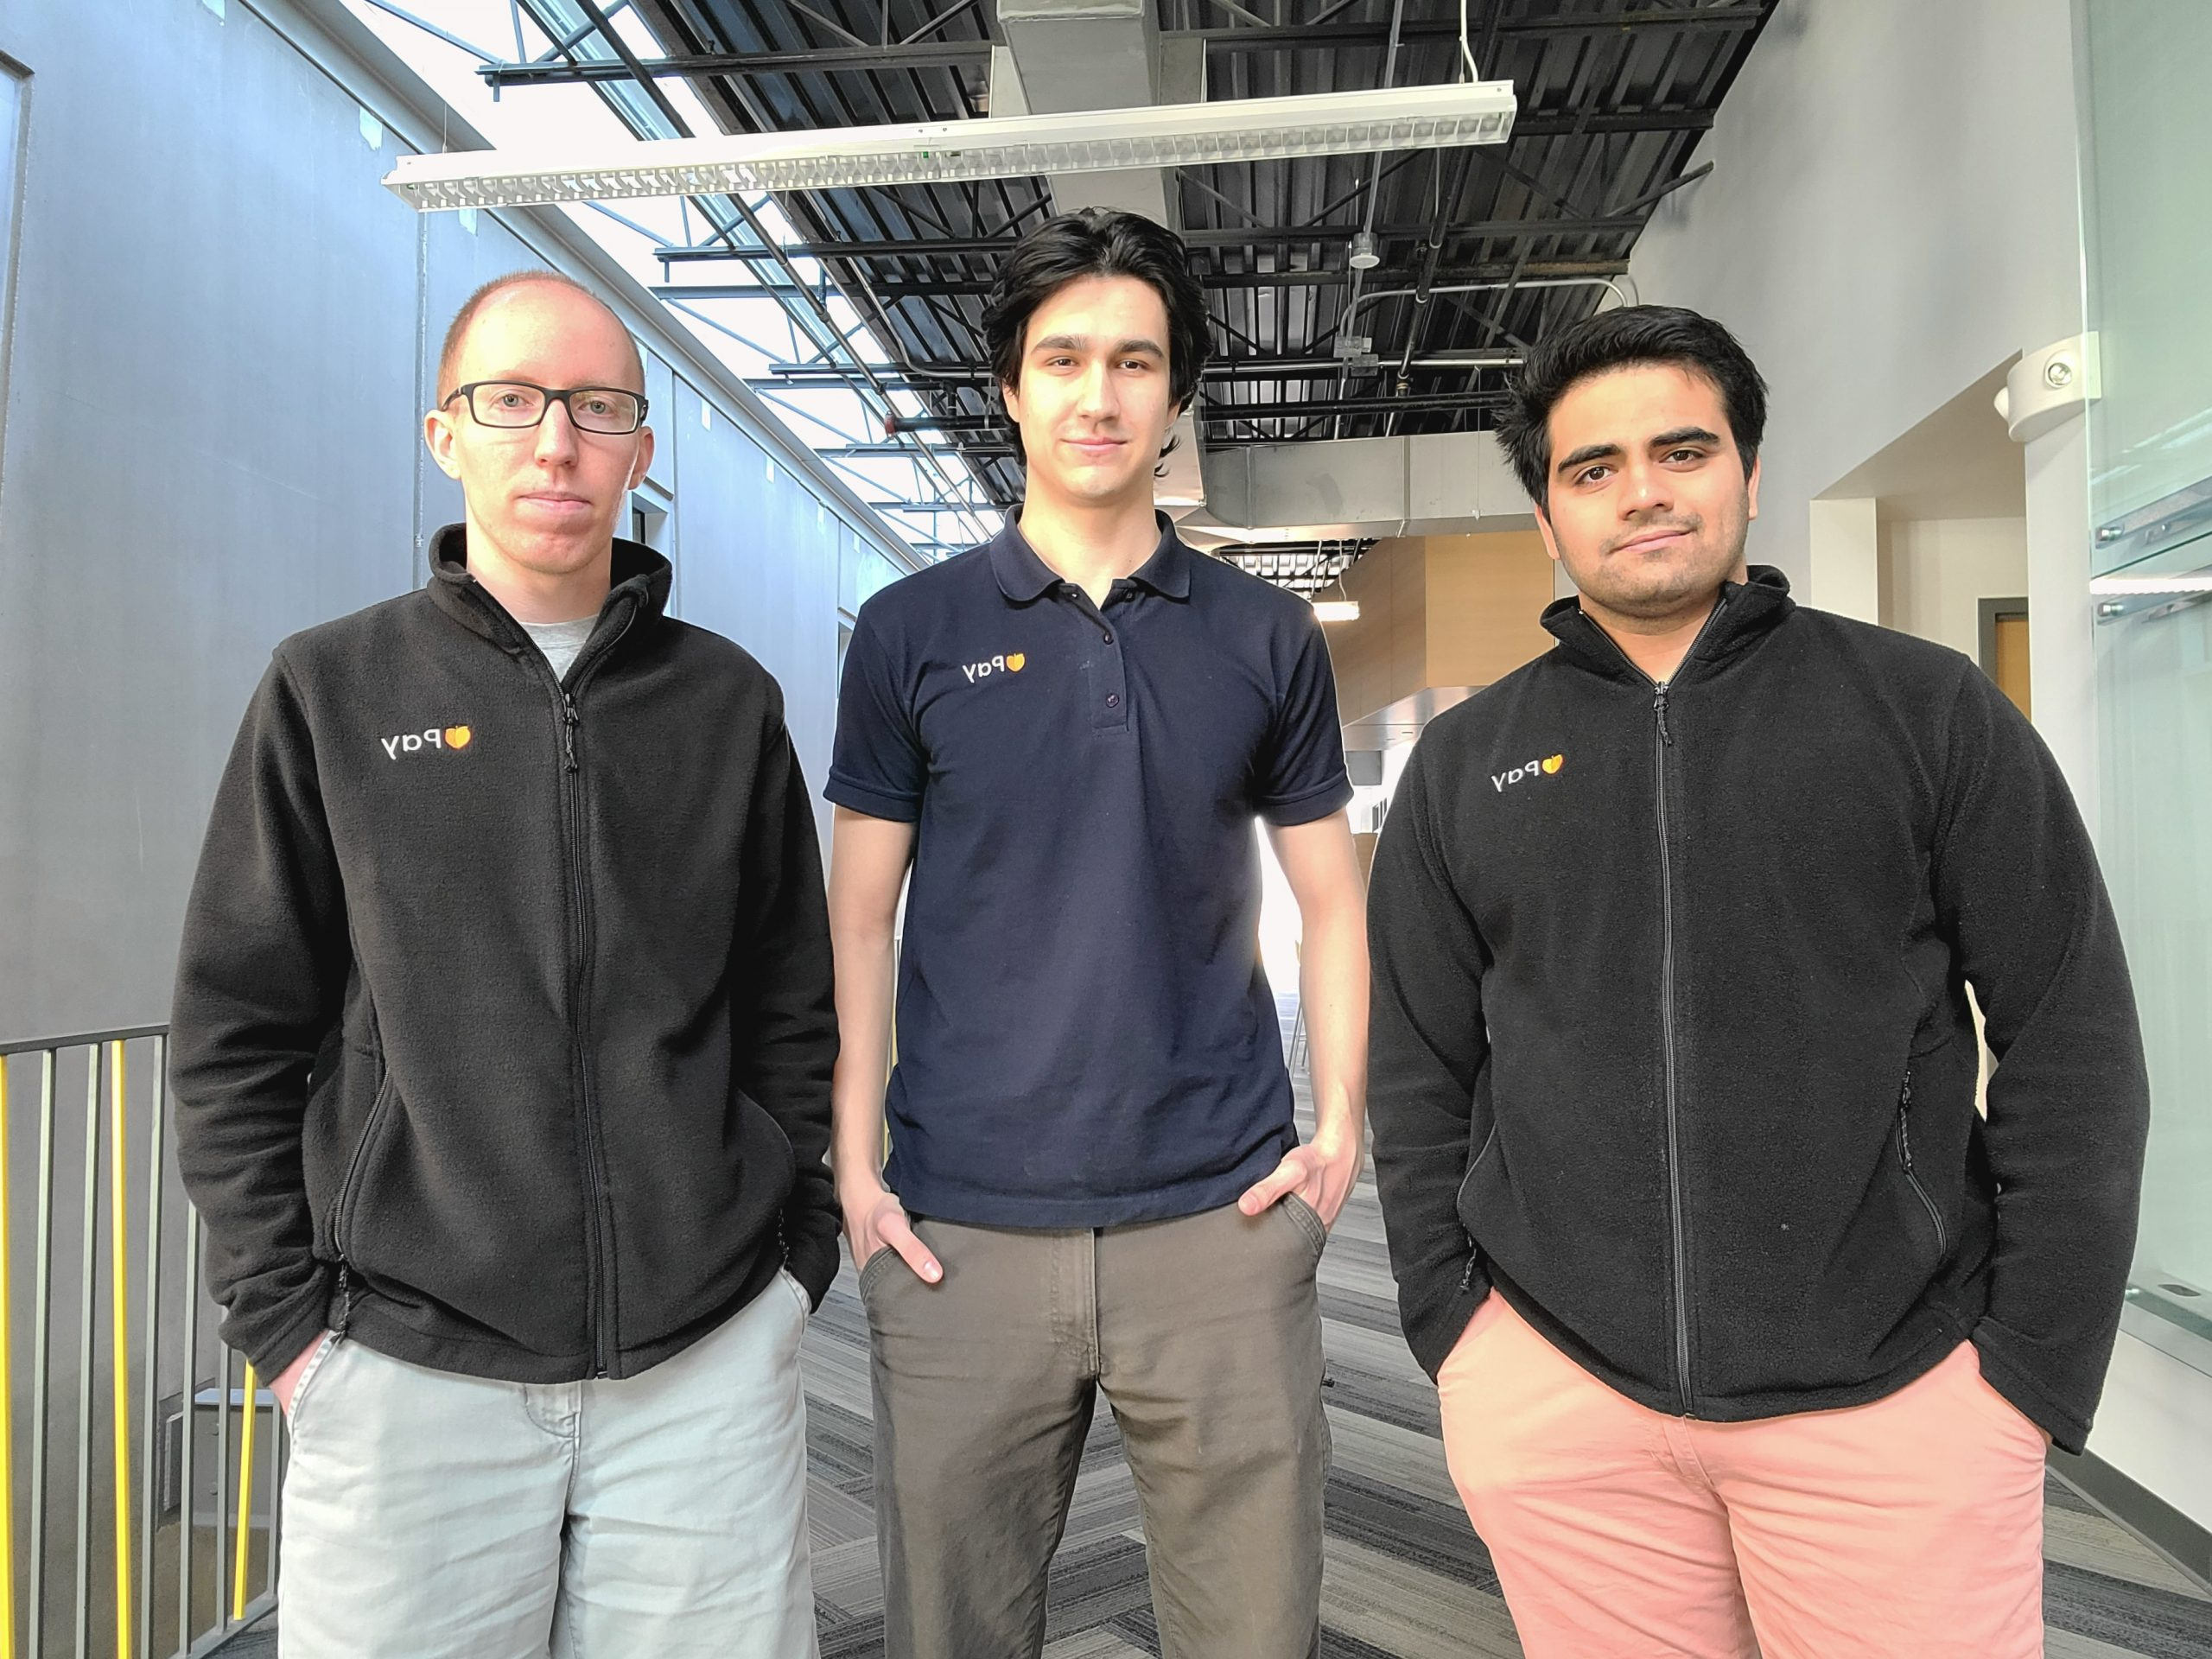 Ames startup PeachPay targets one-click checkouts for small business commerce